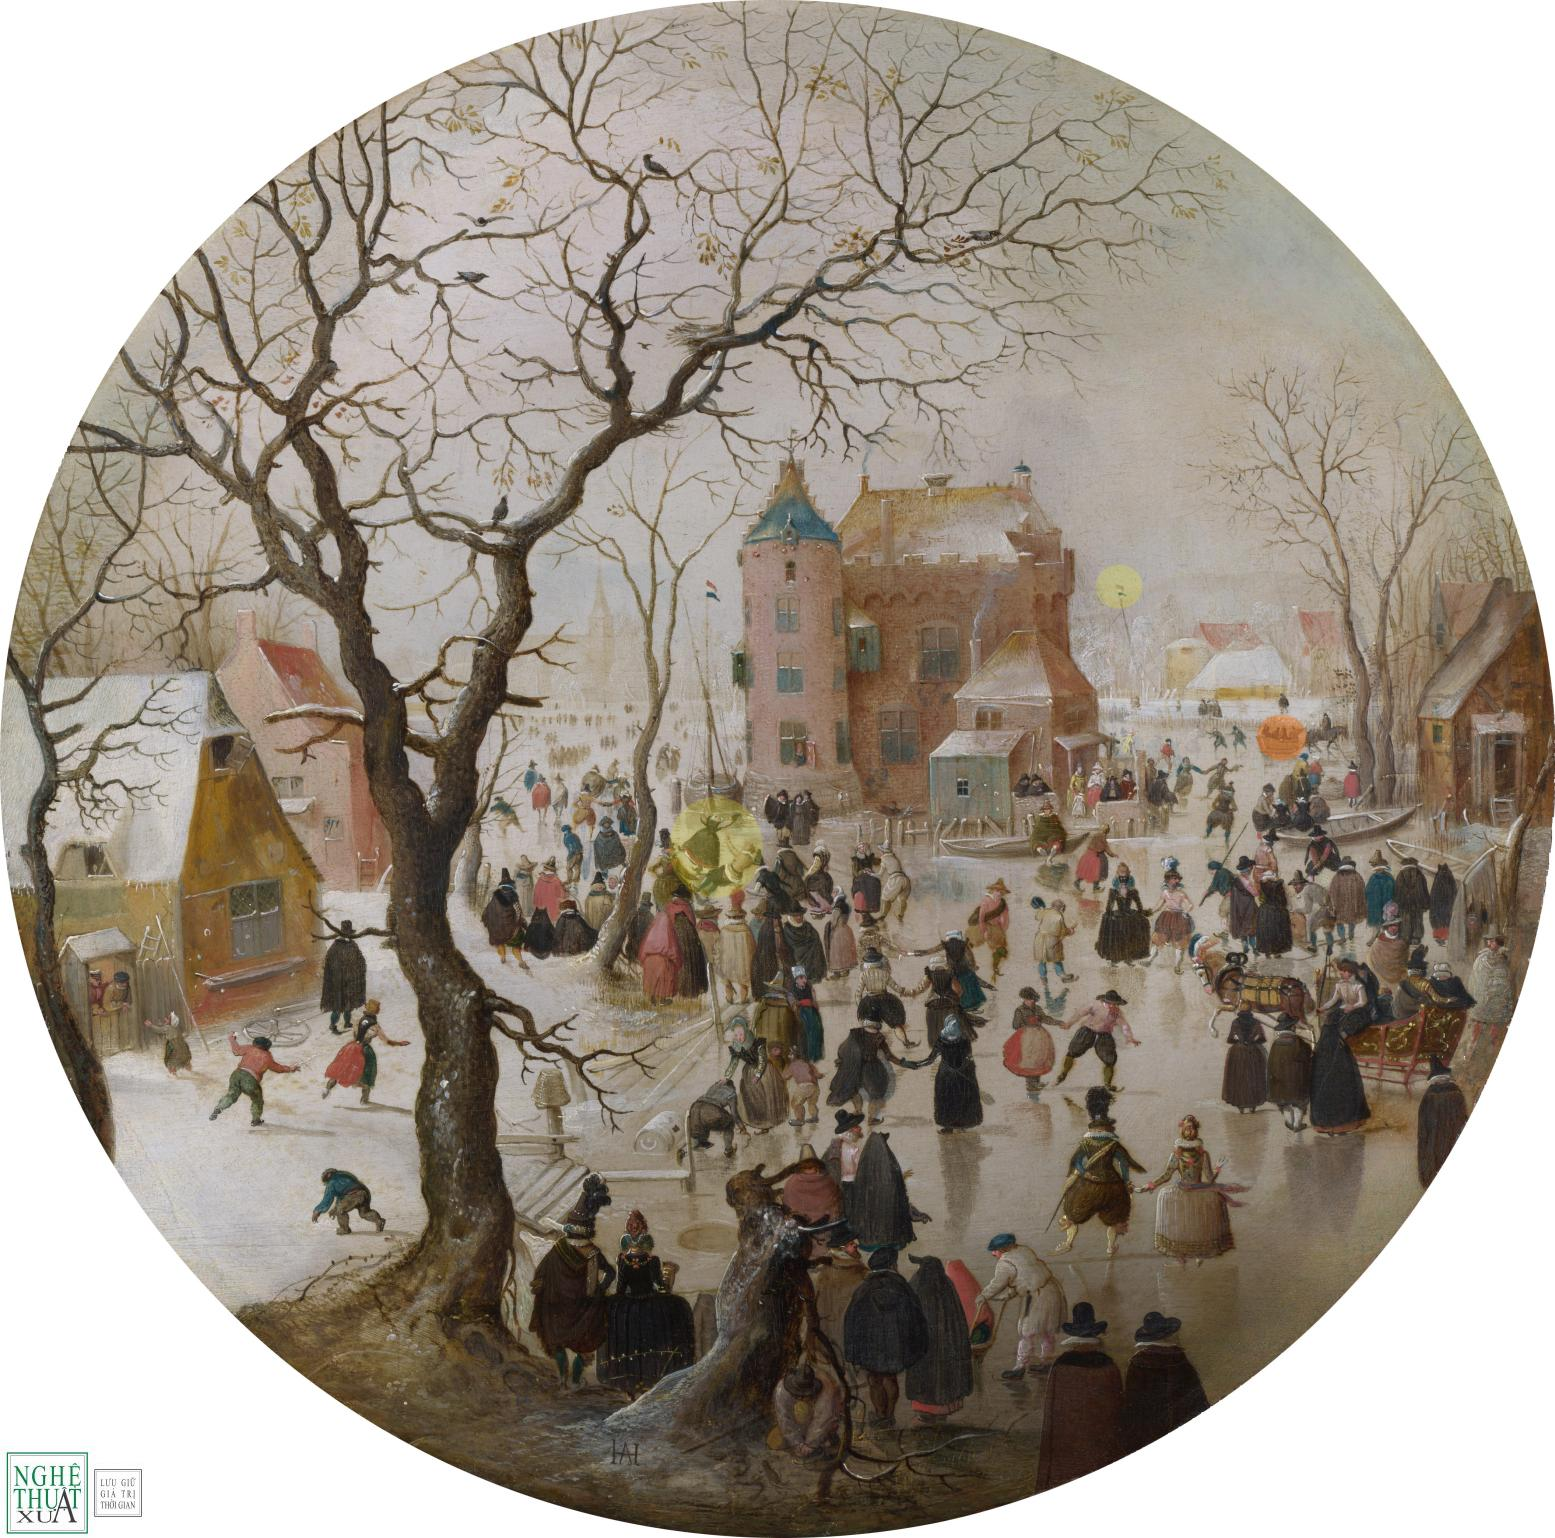 hendrick_averkamp_a_winter_scene_with_skaters_near_a_castle_1